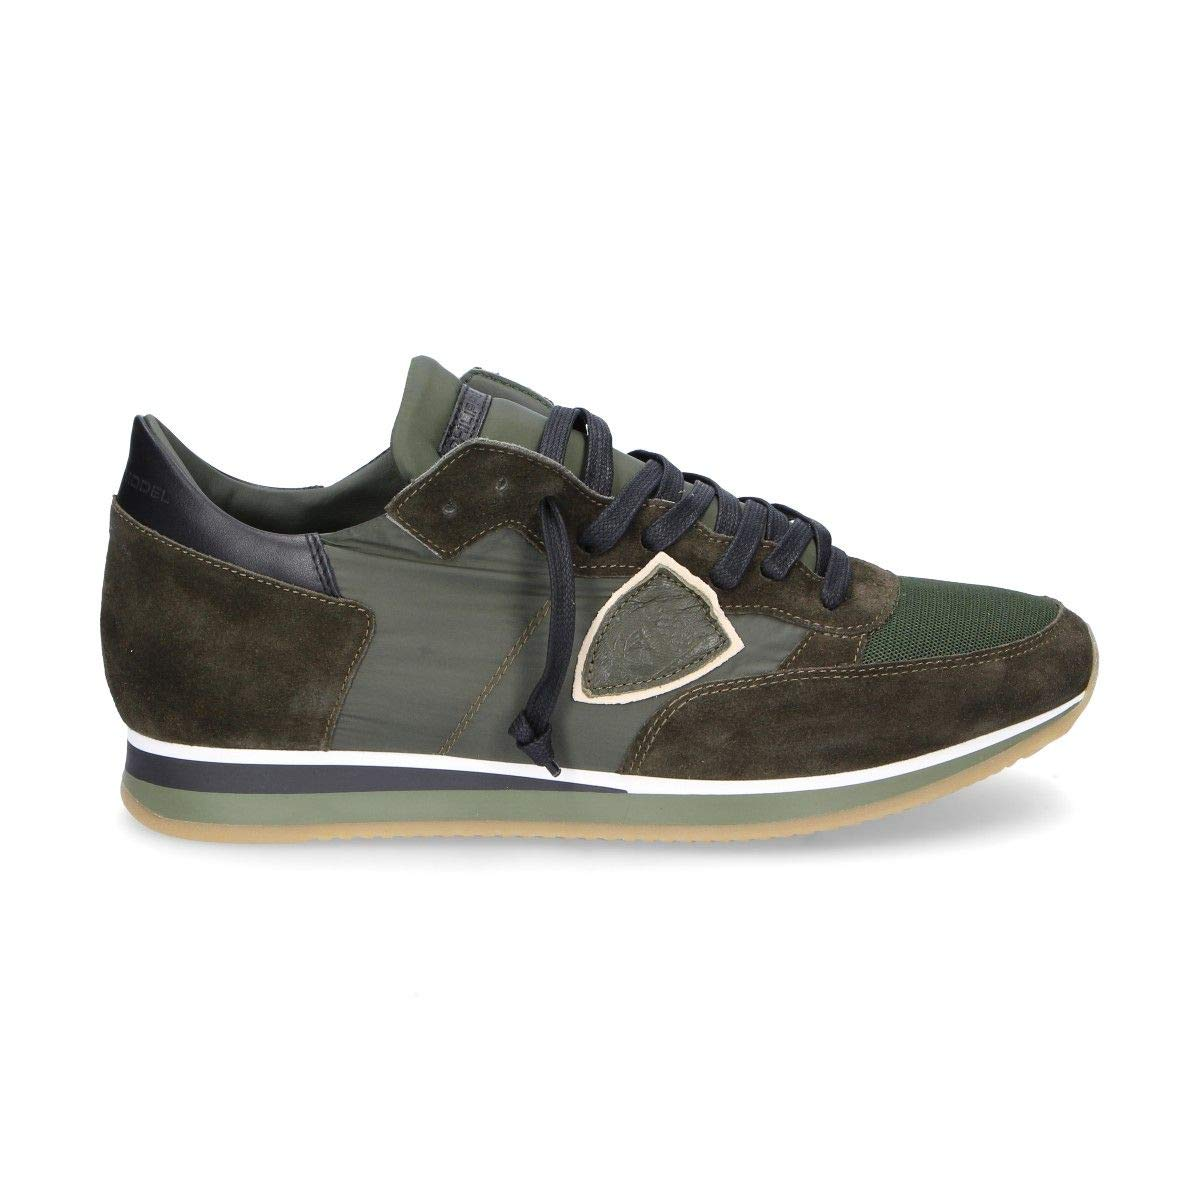 - PHILIPPE MODEL Men's TRLUW037 Green Suede Sneakers